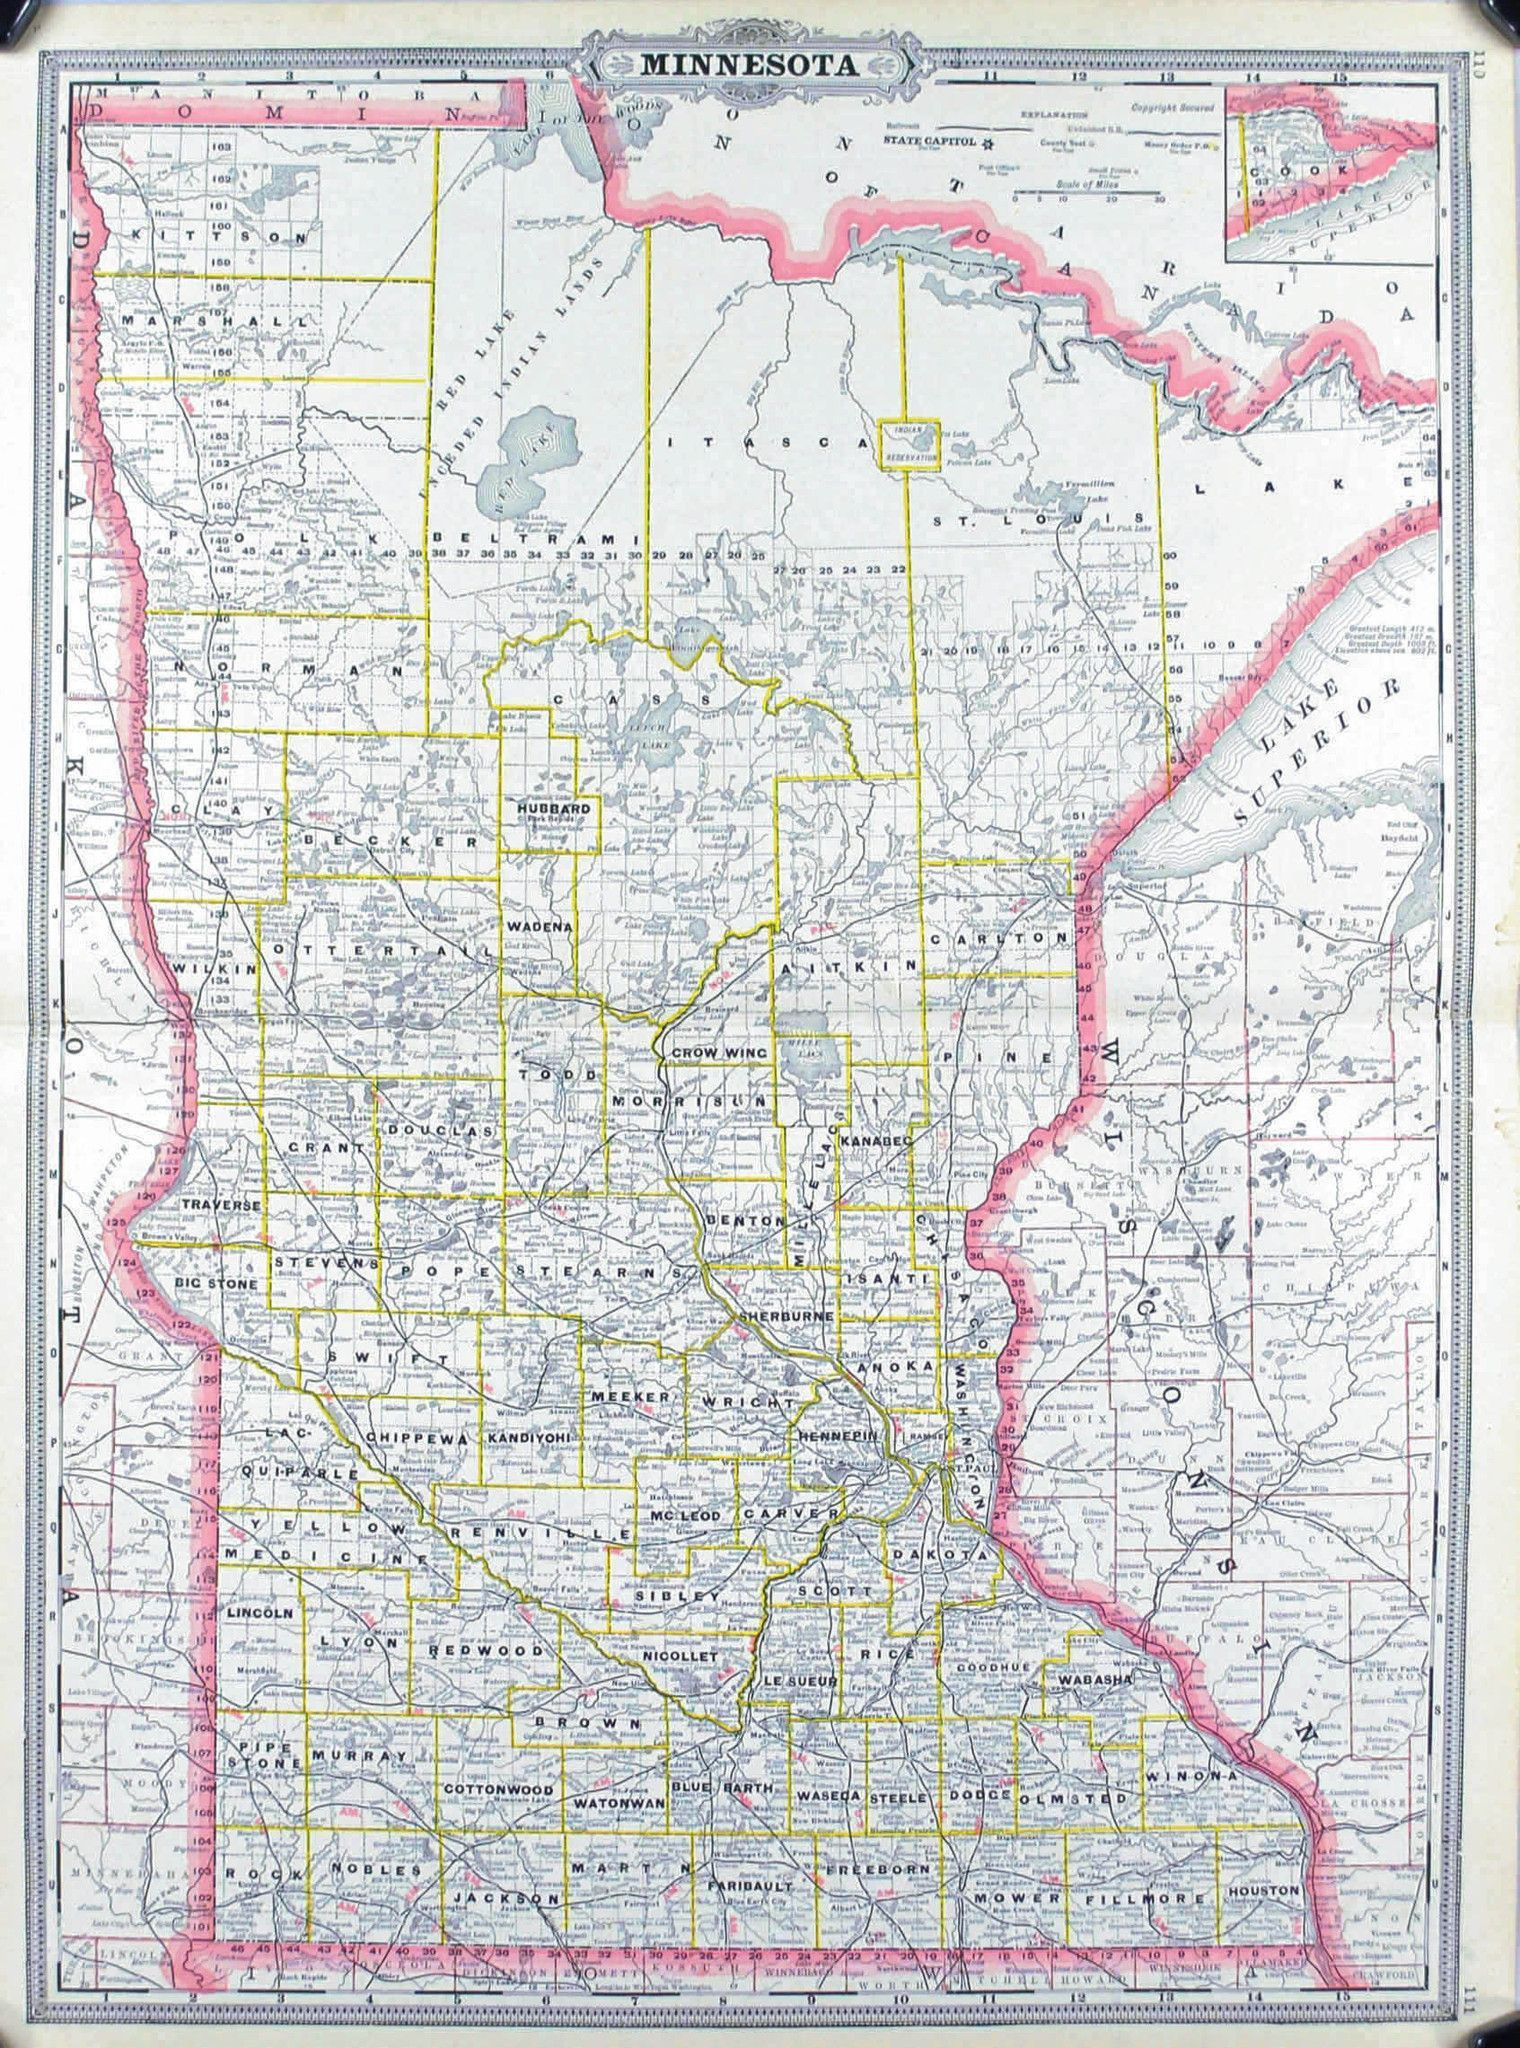 Minnesota Railroad and County Antique Map 1887